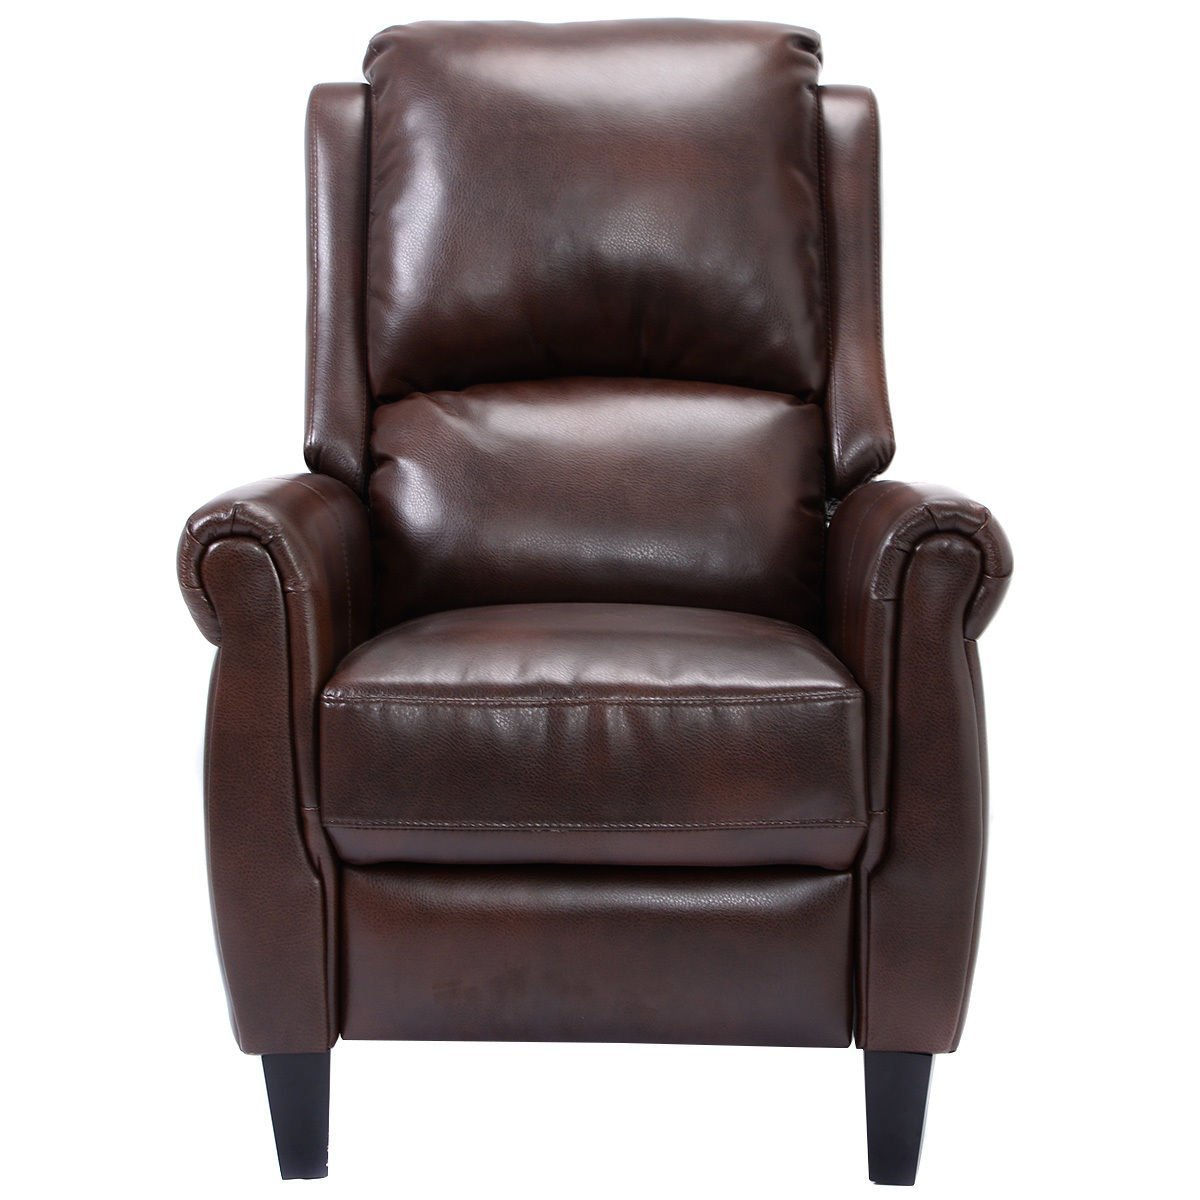 Amazon.com Giantex PU Leather Recliner Chair Push Back Club Living Room Seat Furniture w/Footrest (Brown) Kitchen \u0026 Dining  sc 1 st  Amazon.com & Amazon.com: Giantex PU Leather Recliner Chair Push Back Club ... islam-shia.org